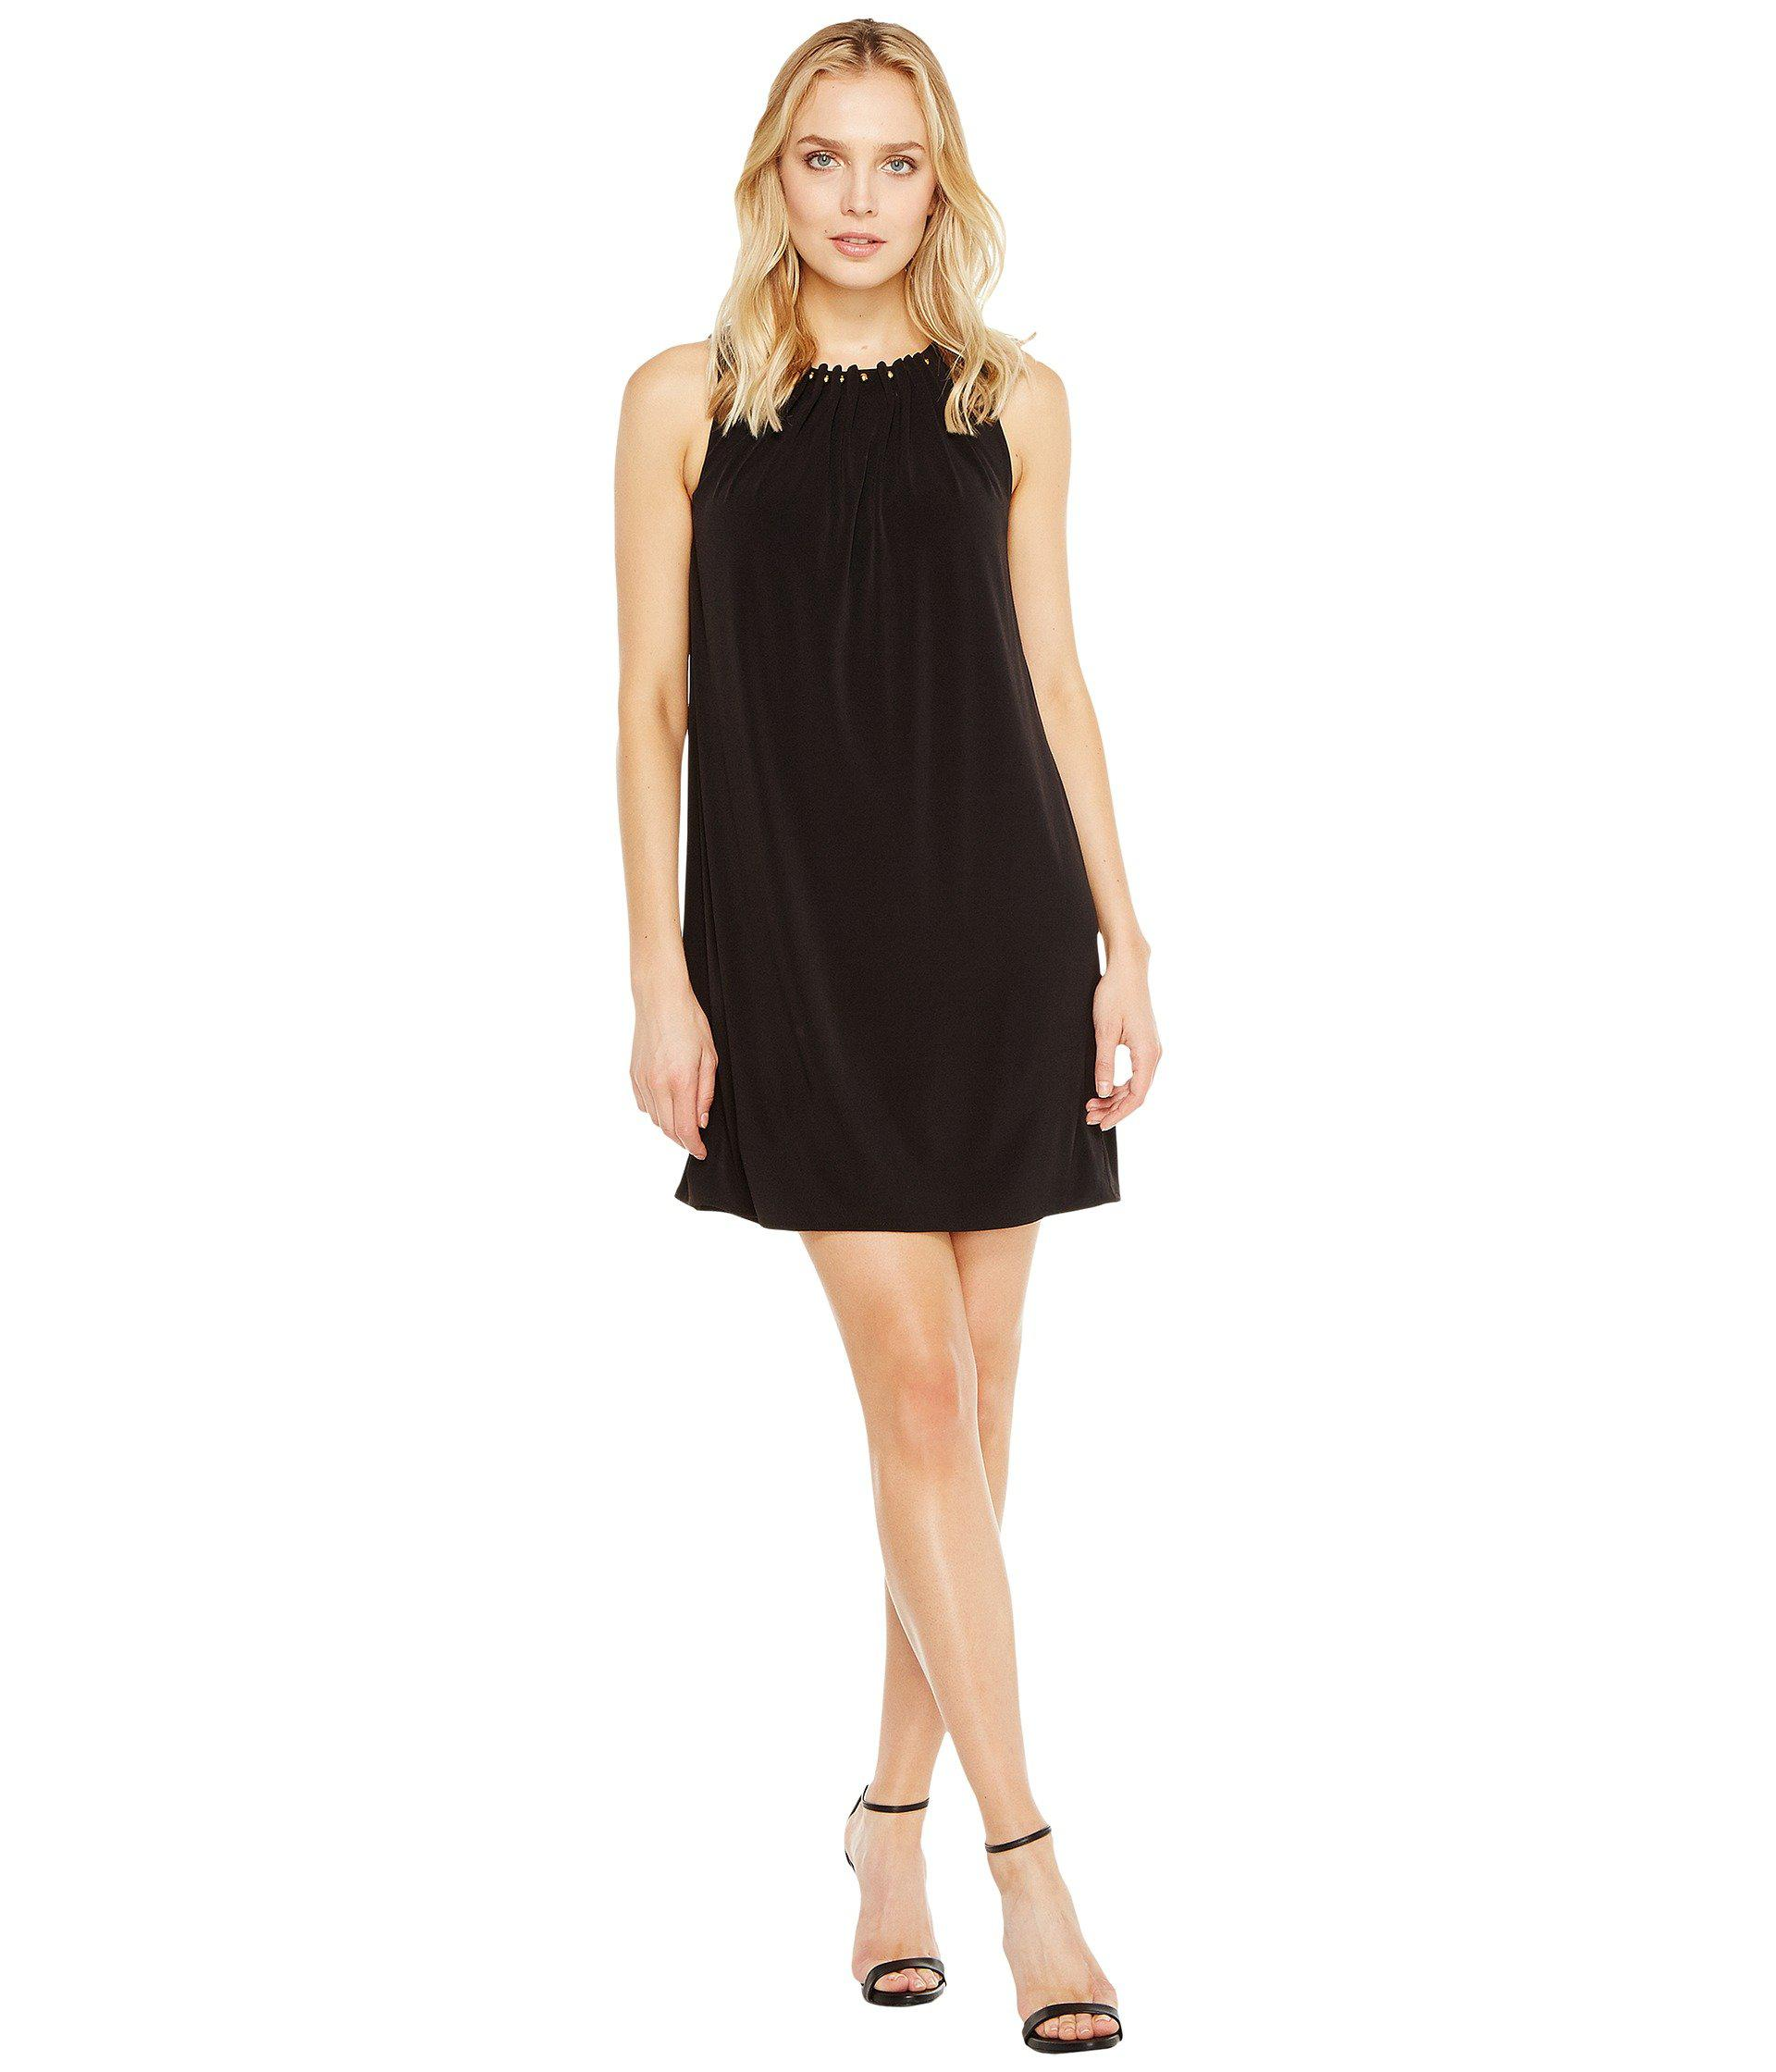 10639a44ebb50 Lyst - Tahari Jersey Shift Dress With Gold Necklace in Black - Save 58%